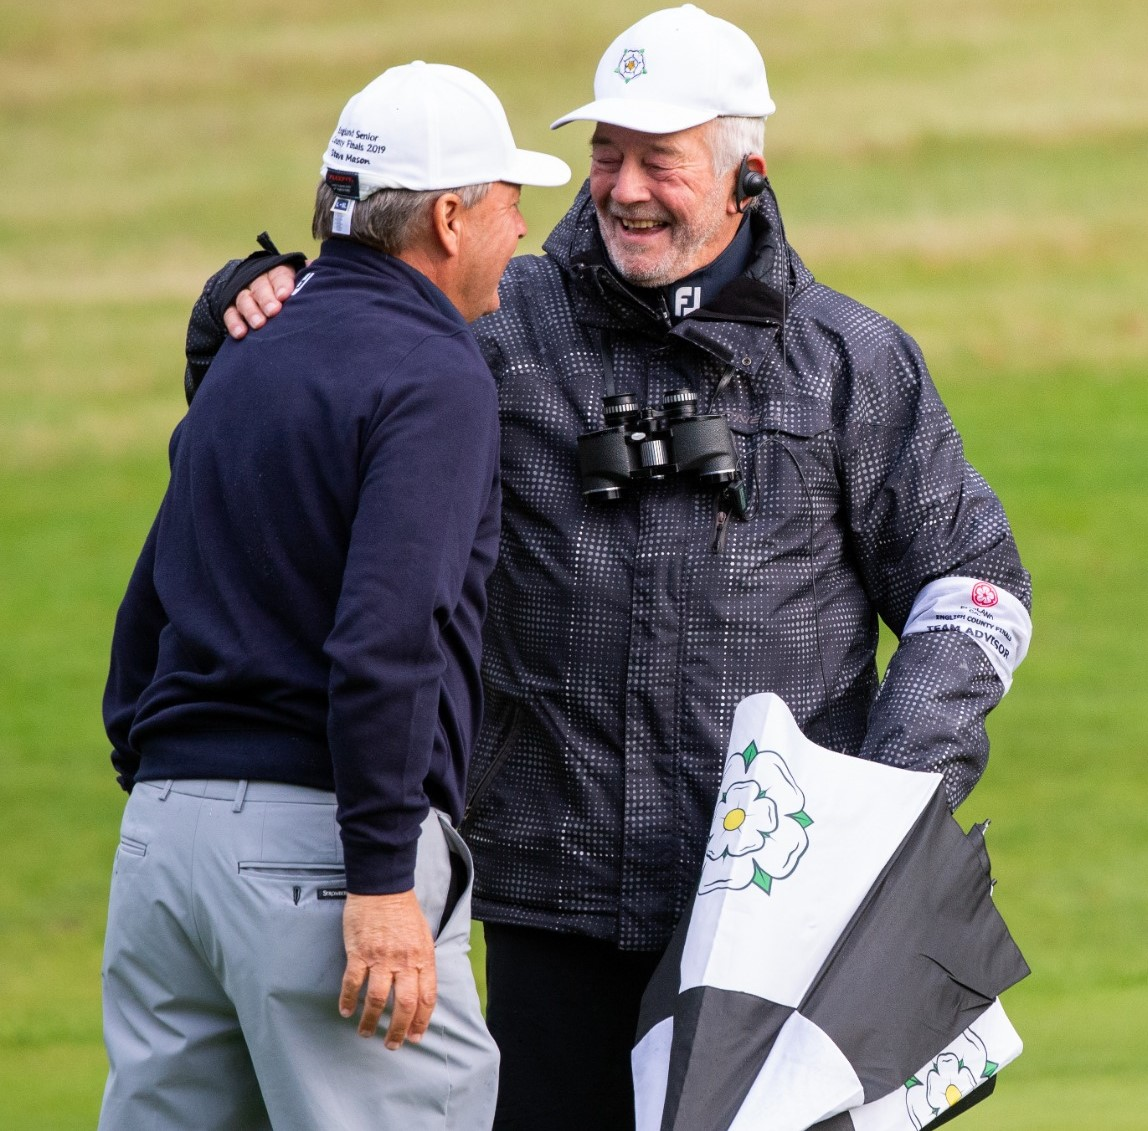 Yorkshire skipper hails the 'golden oldies' of English golf